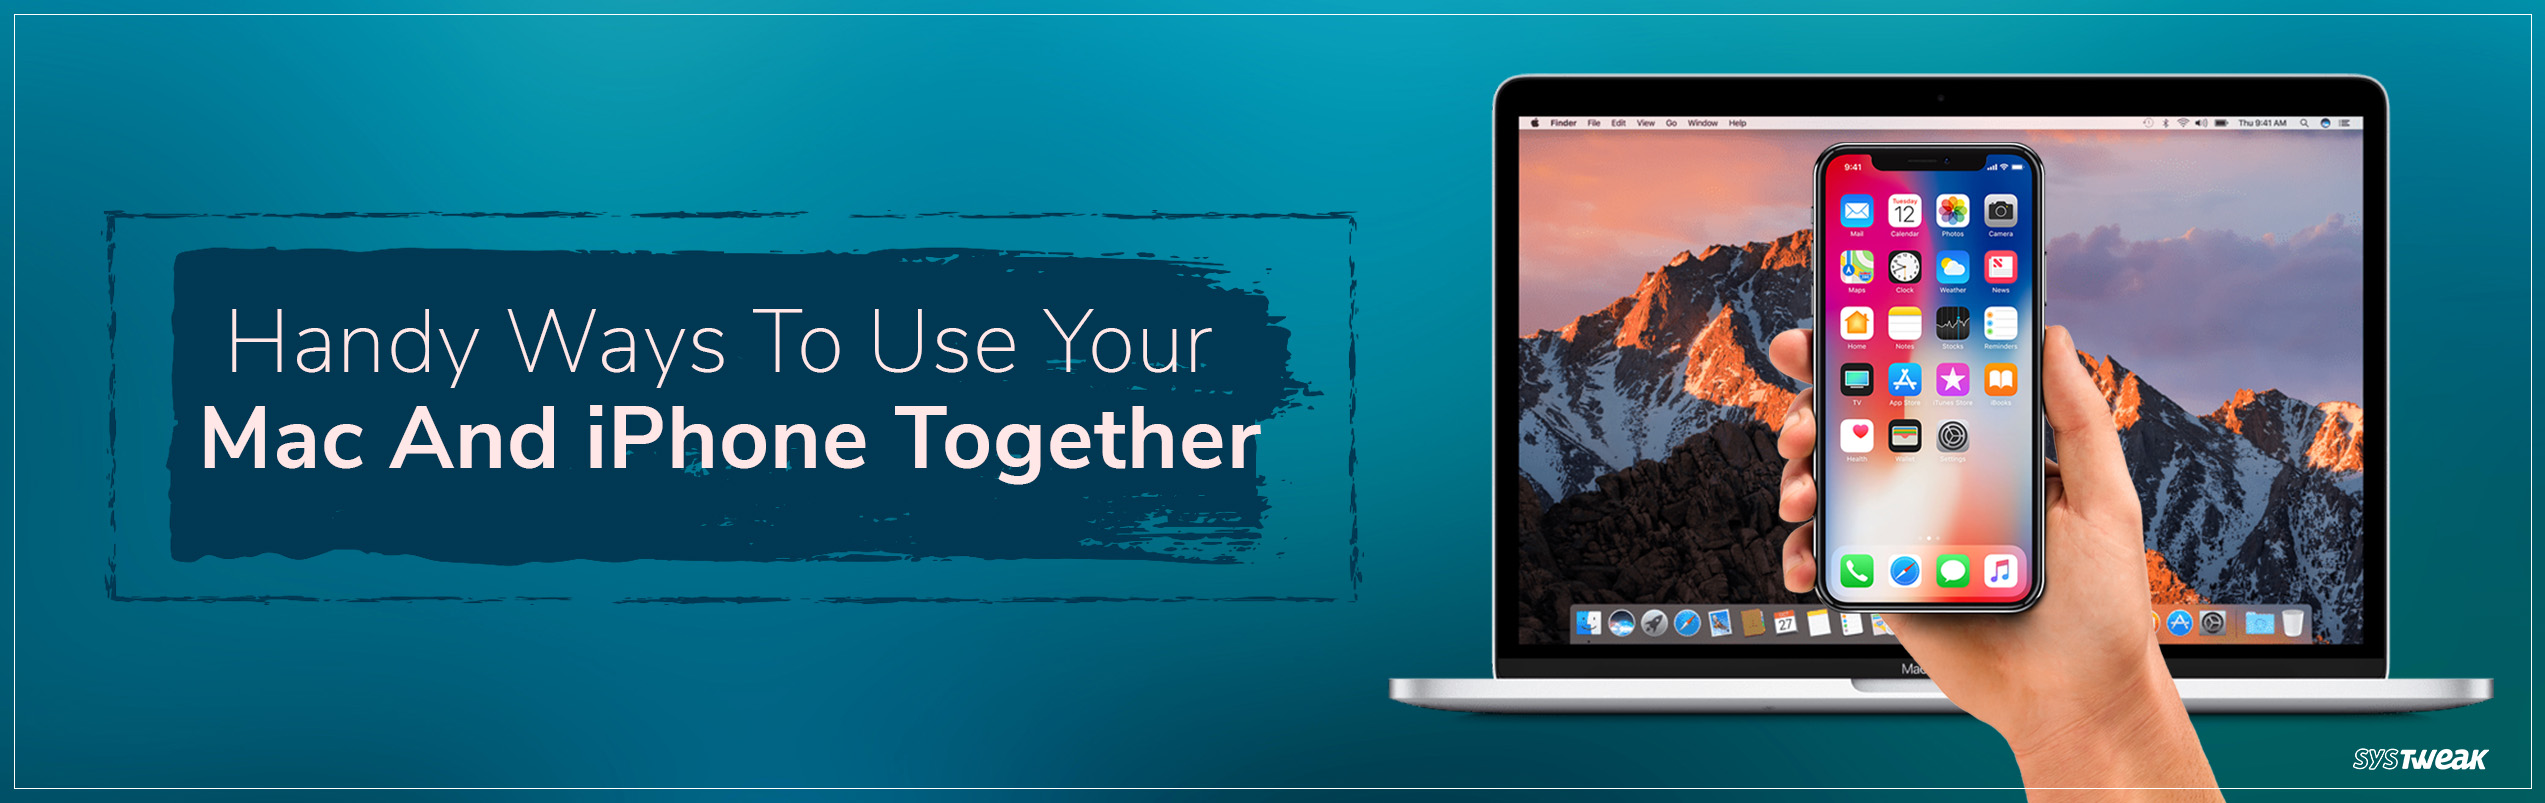 Efficient Ways to Use Your Mac and iPhone Together